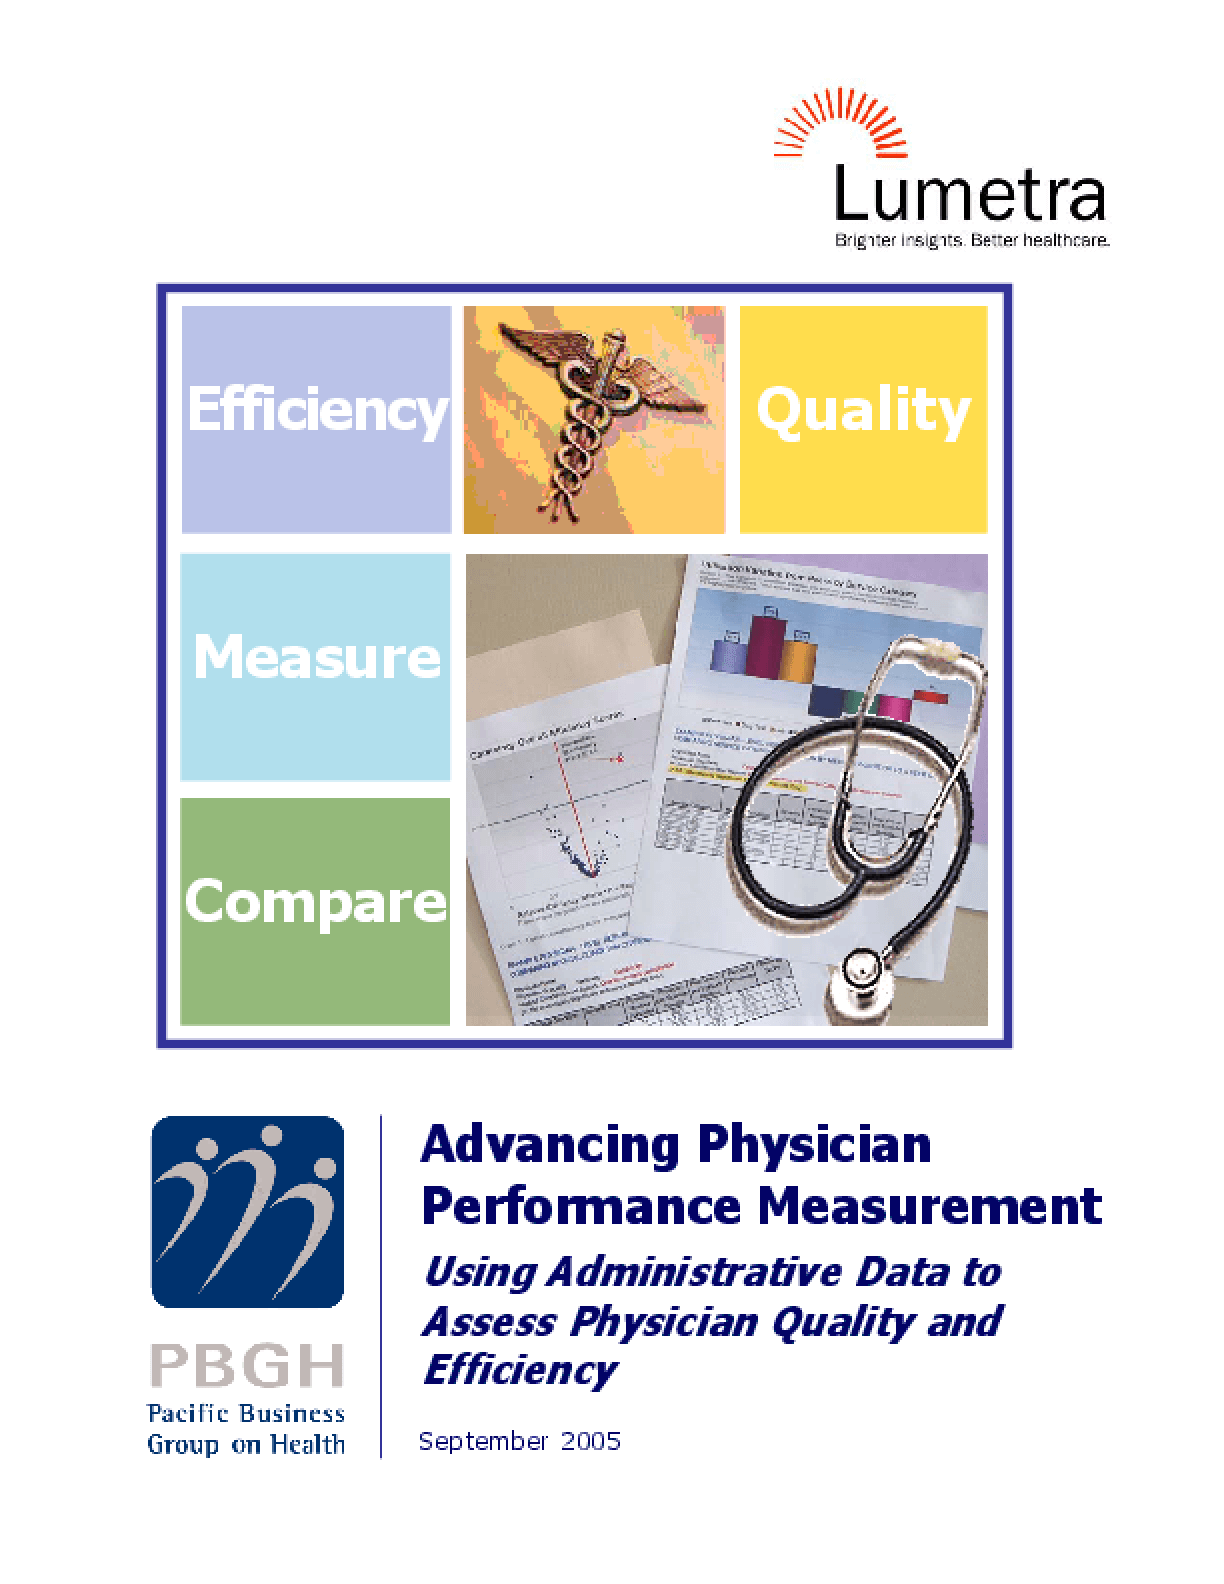 Advancing Physician Performance Measurement: Using Administrative Data to Assess Physician Quality and Efficiency